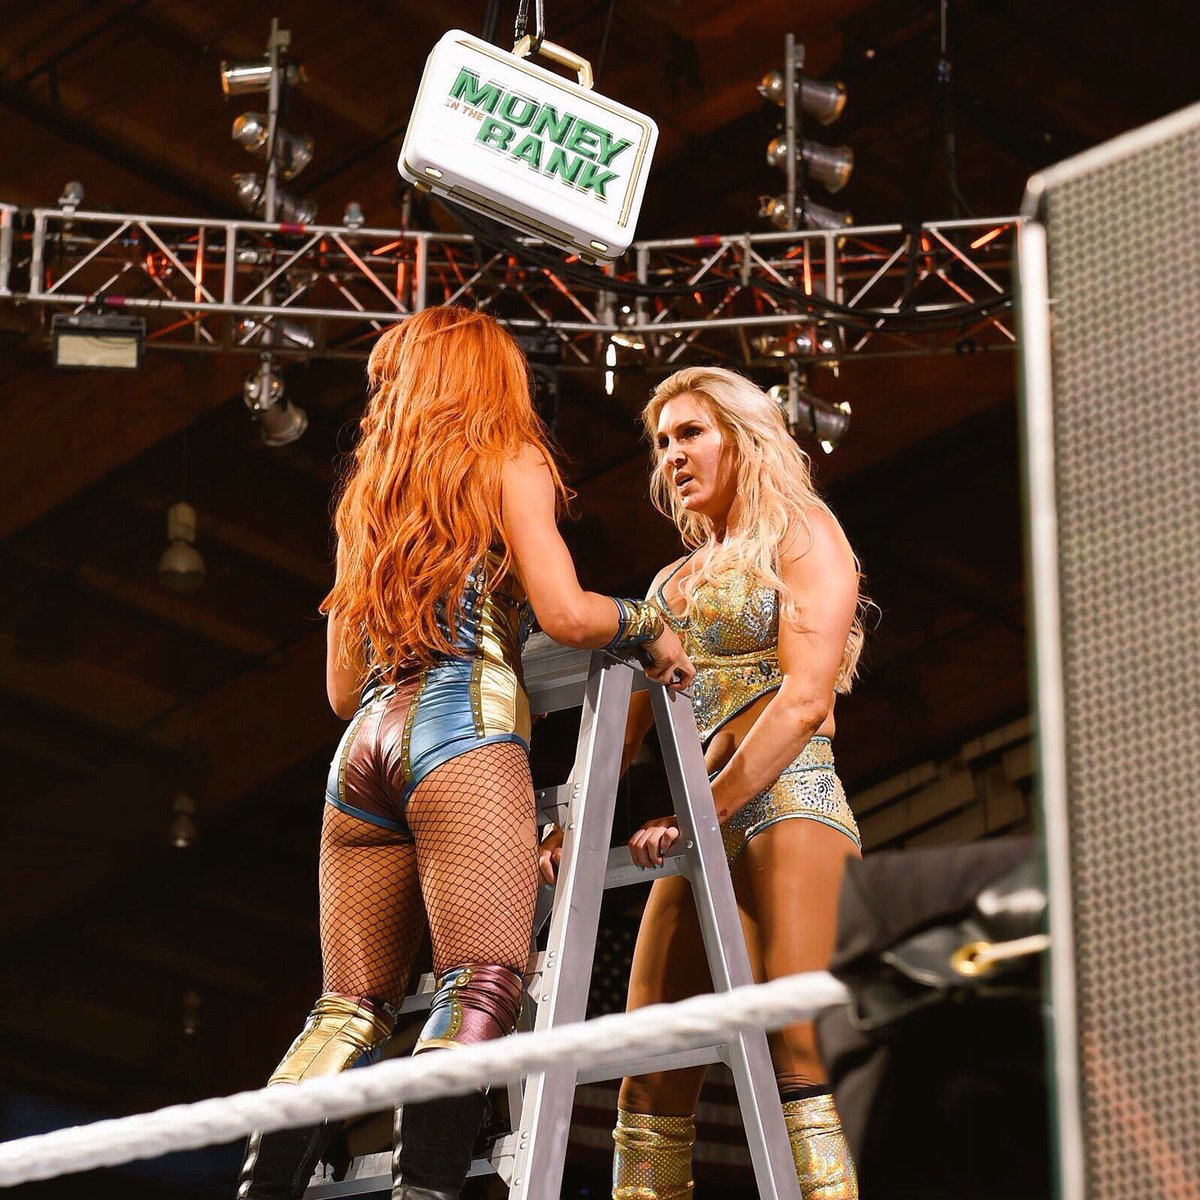 At MITB 2018, WWE teased their biggest future programme between two best friends atop a ladder.  One year later, Becky is walking in with two titles, and both have main evented Wrestlemania. They have been through so much in the past 12 months.  What a difference a year makes. <br>http://pic.twitter.com/Src0cBQ4ip